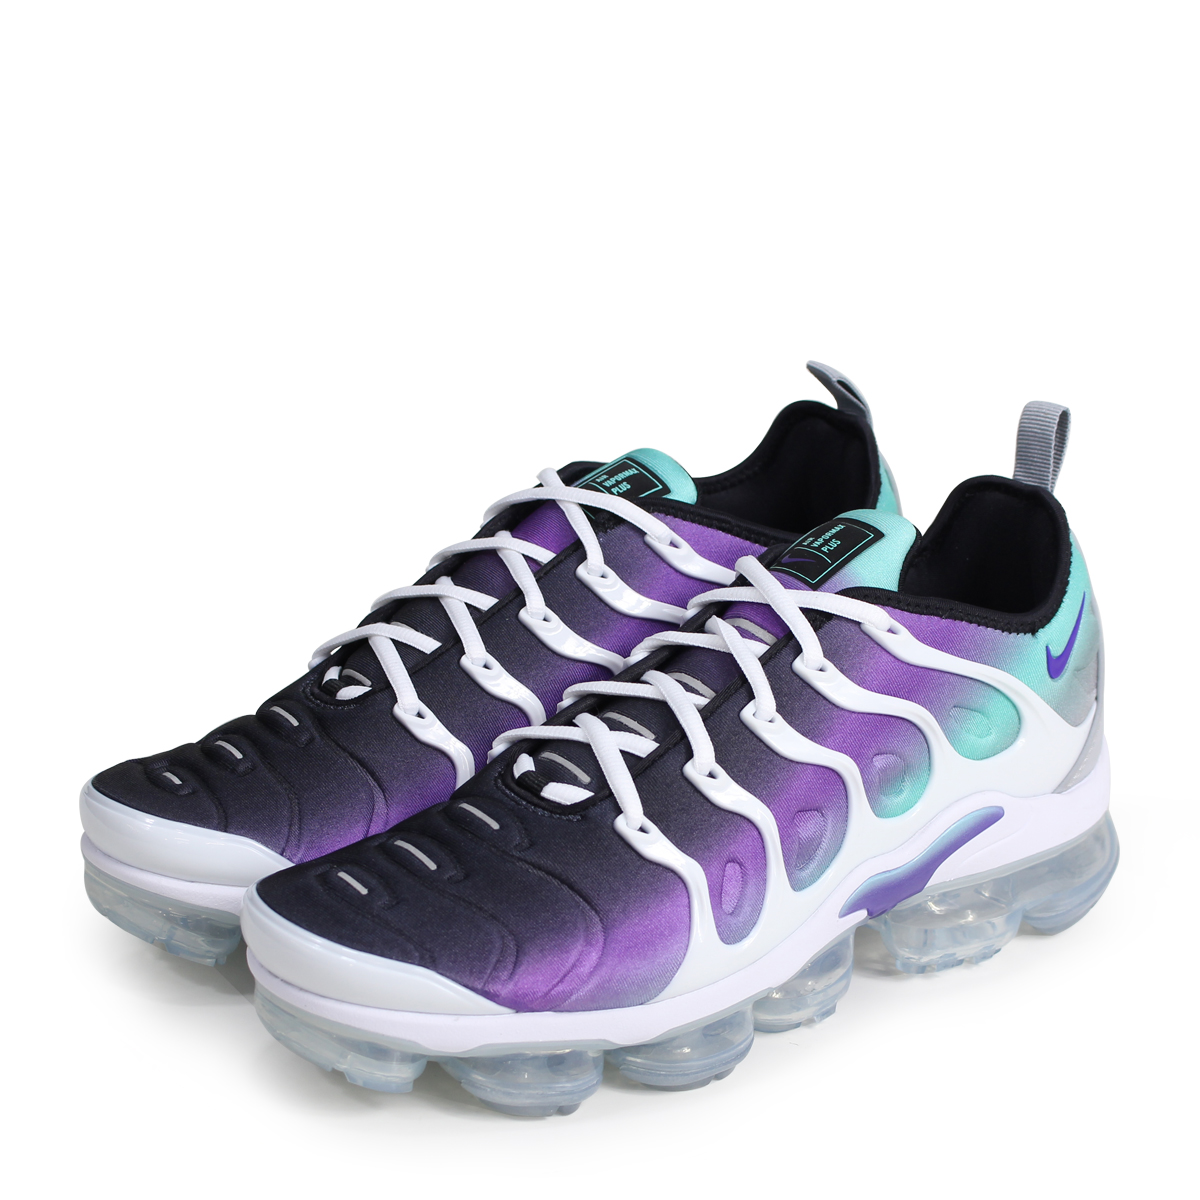 58dcd153f452 ALLSPORTS  NIKE AIR VAPORMAX PLUS GRAPE Nike vapor max plus sneakers ...